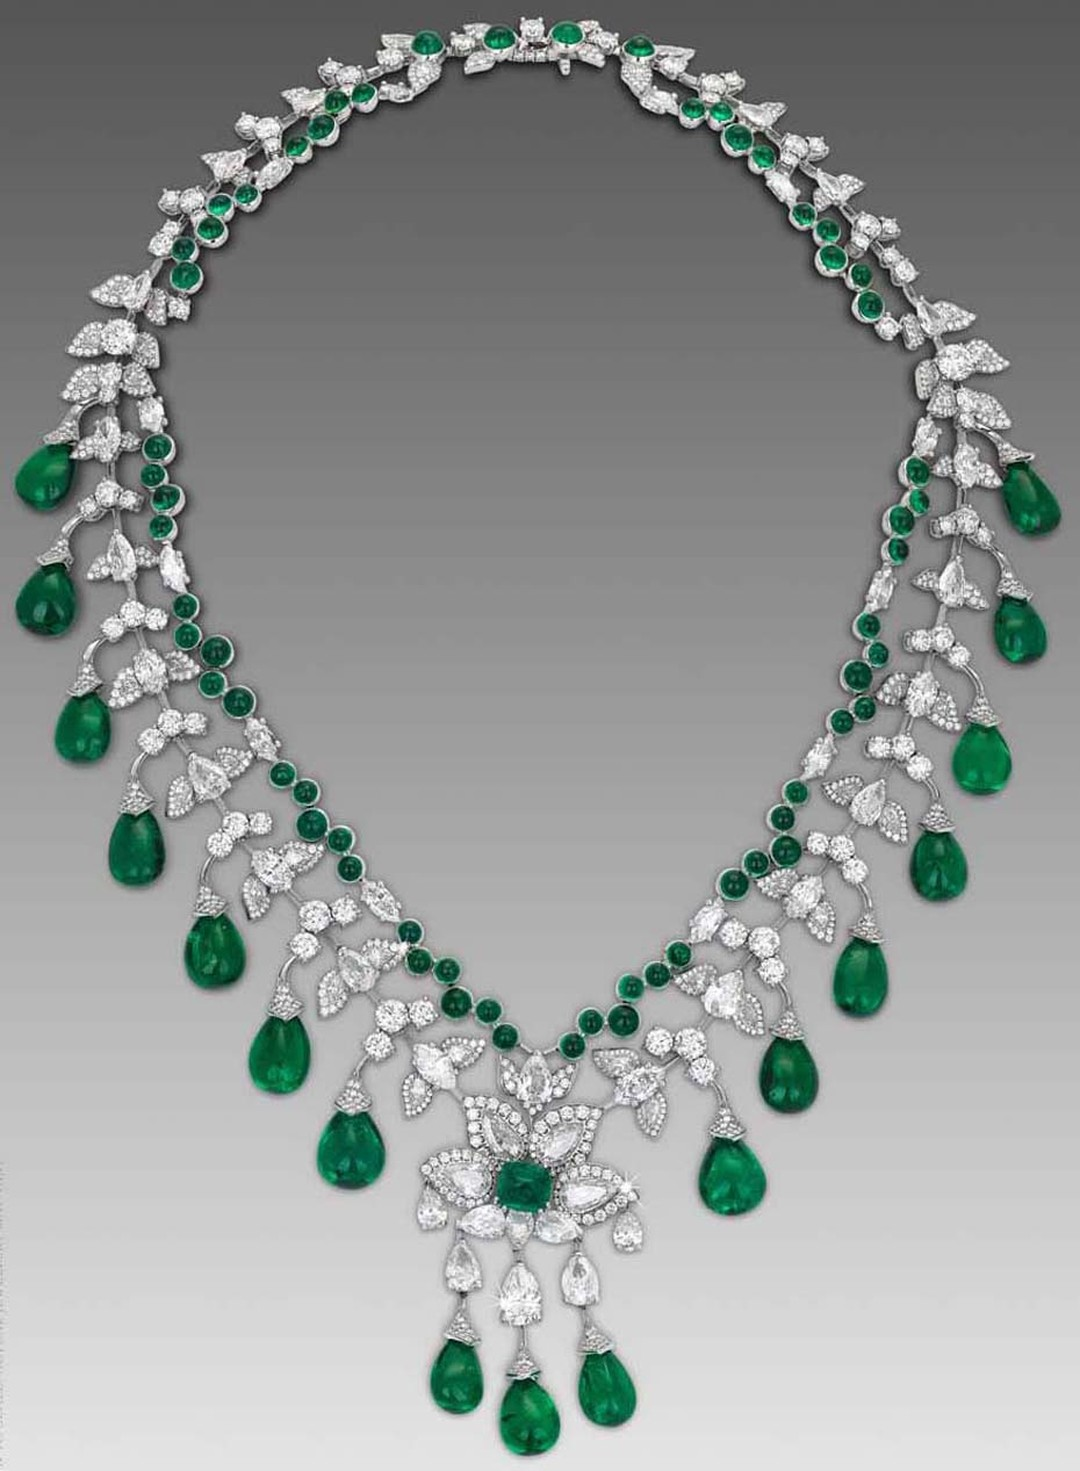 Zambian cabochon emerald necklace by David Morris in white gold.